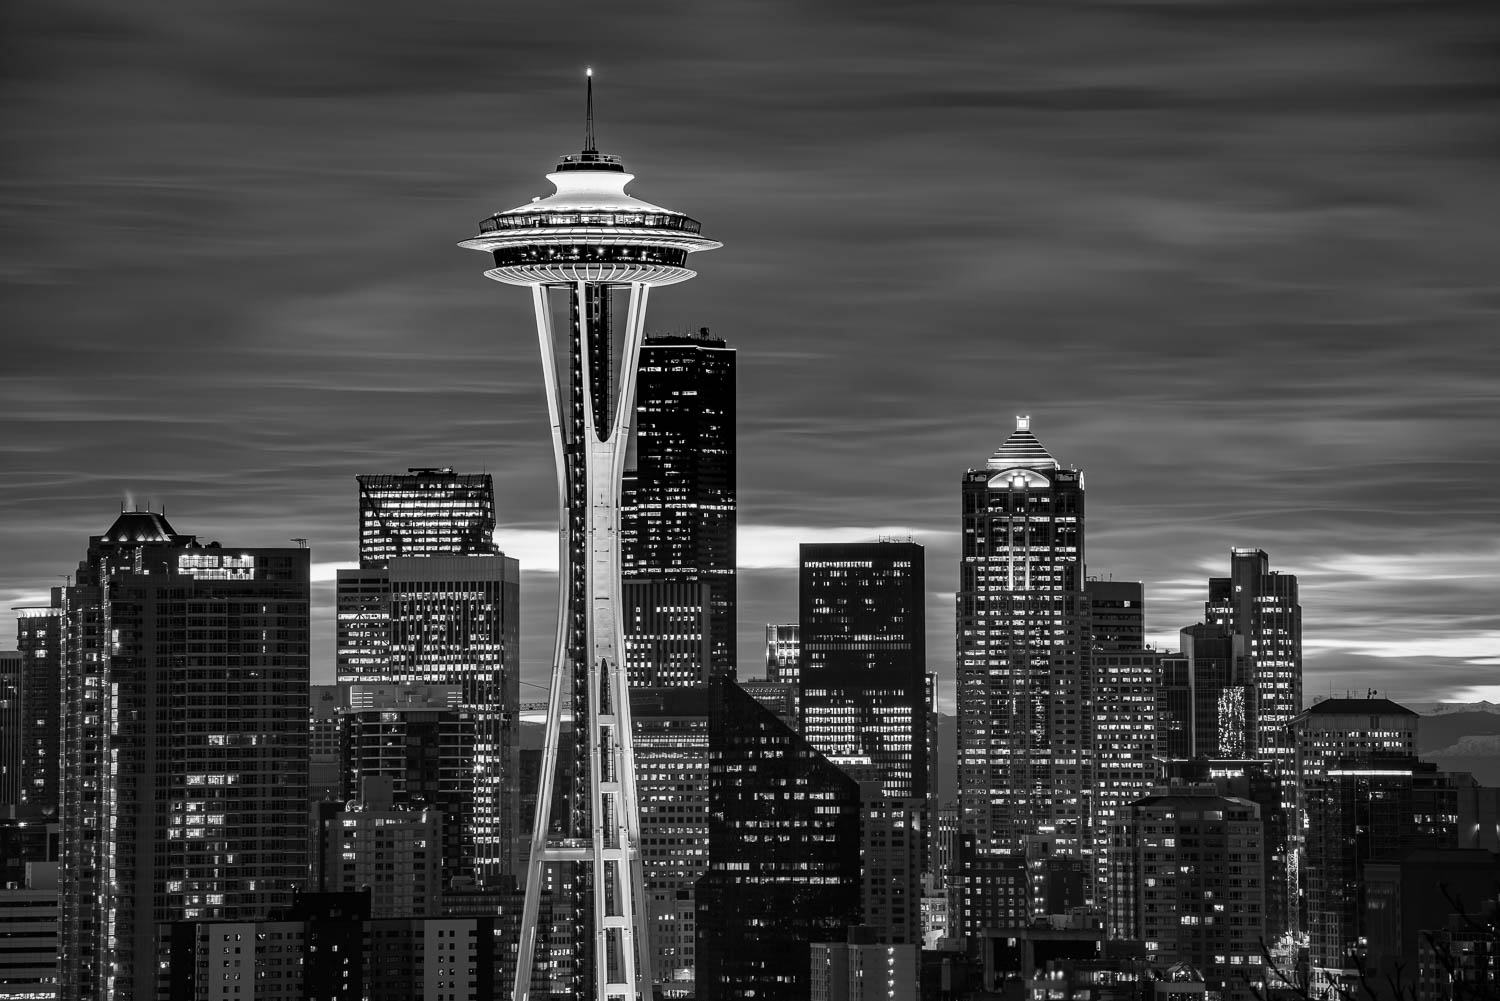 Space Needle city skyline in black and white